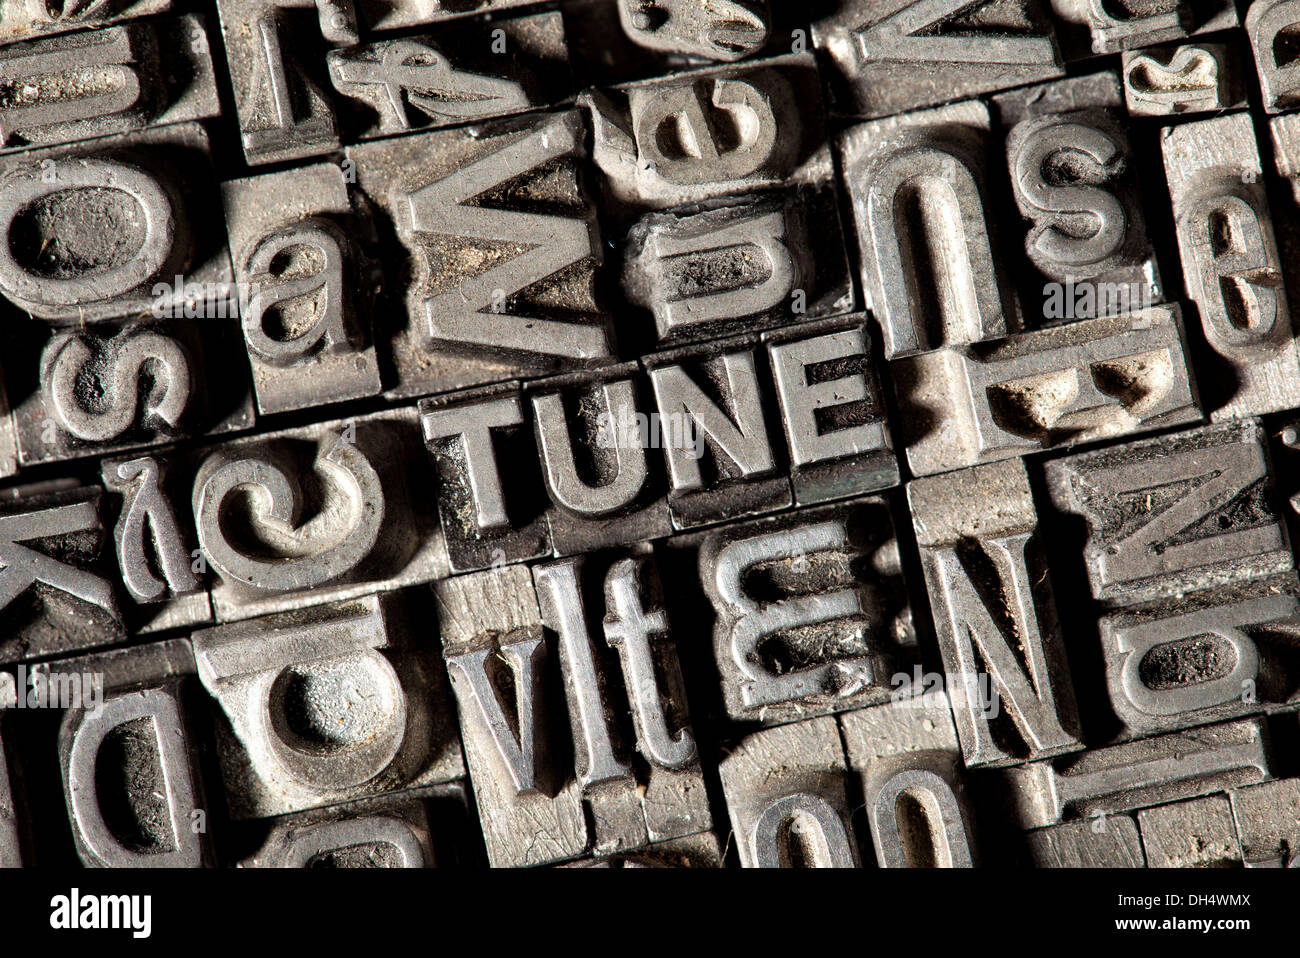 Old lead letters forming the word TUNE - Stock Image